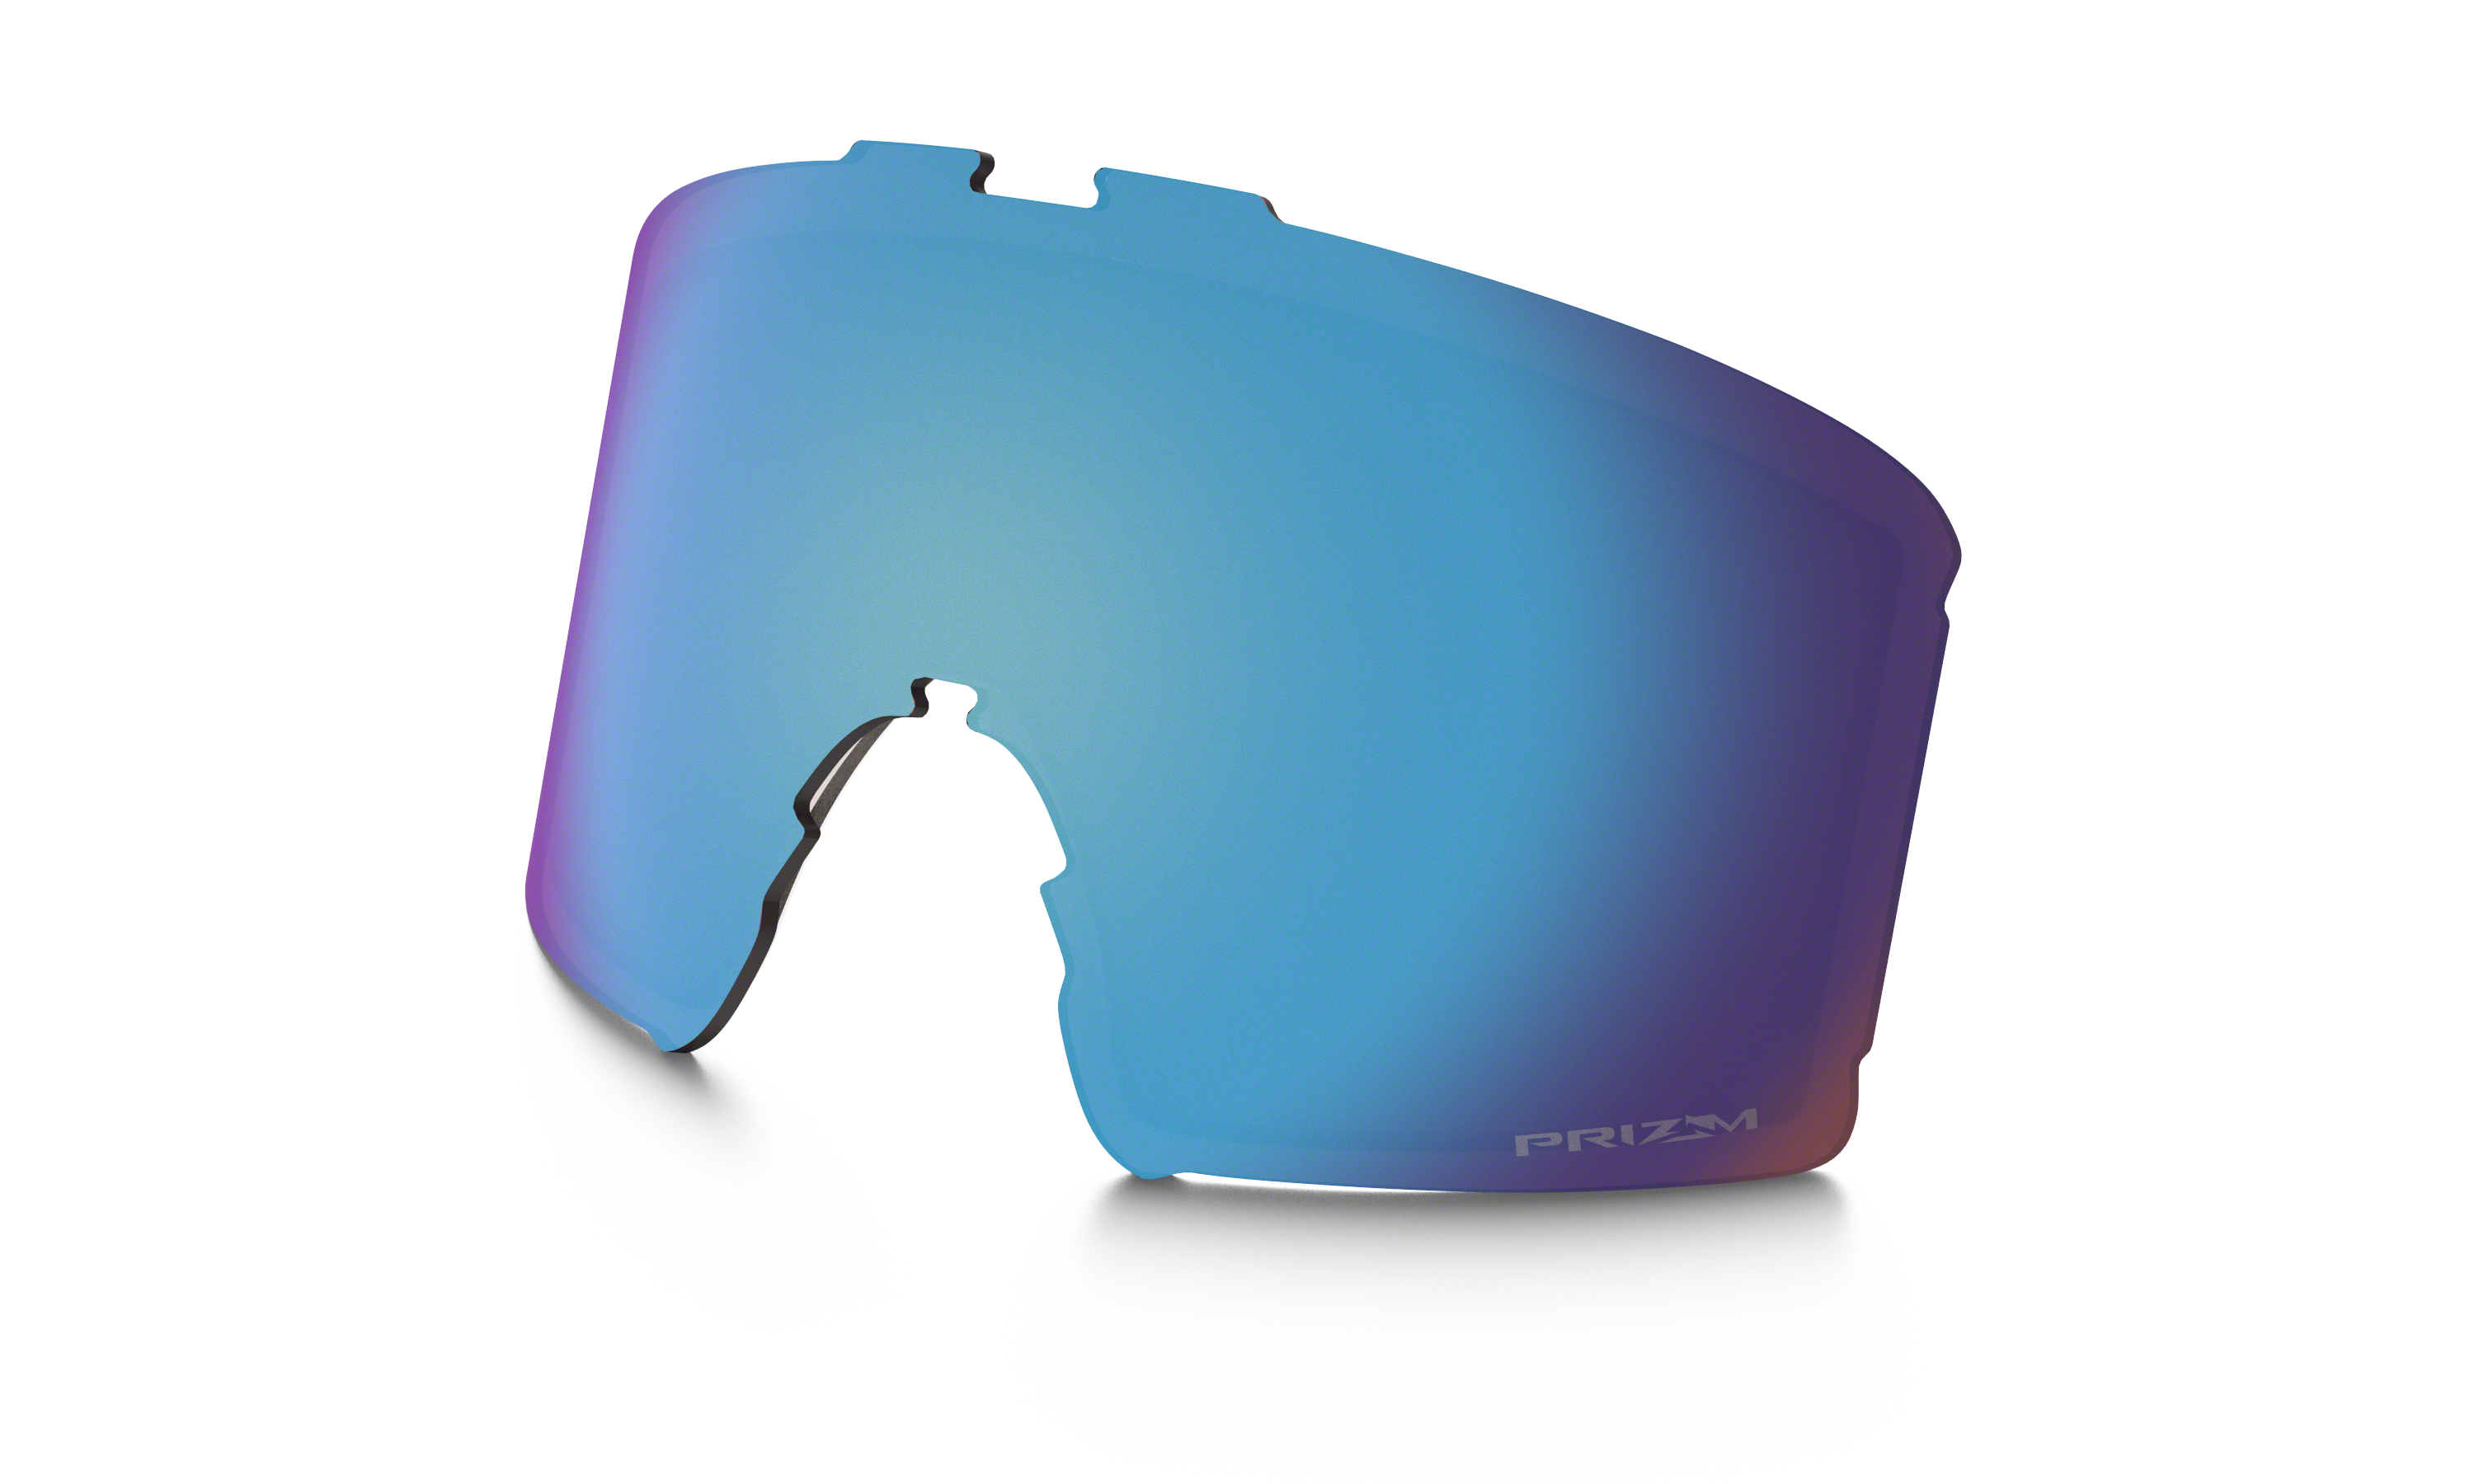 main_101-643-007_line-miner-snow-replacement-lens_prizm-sapphire_001.png